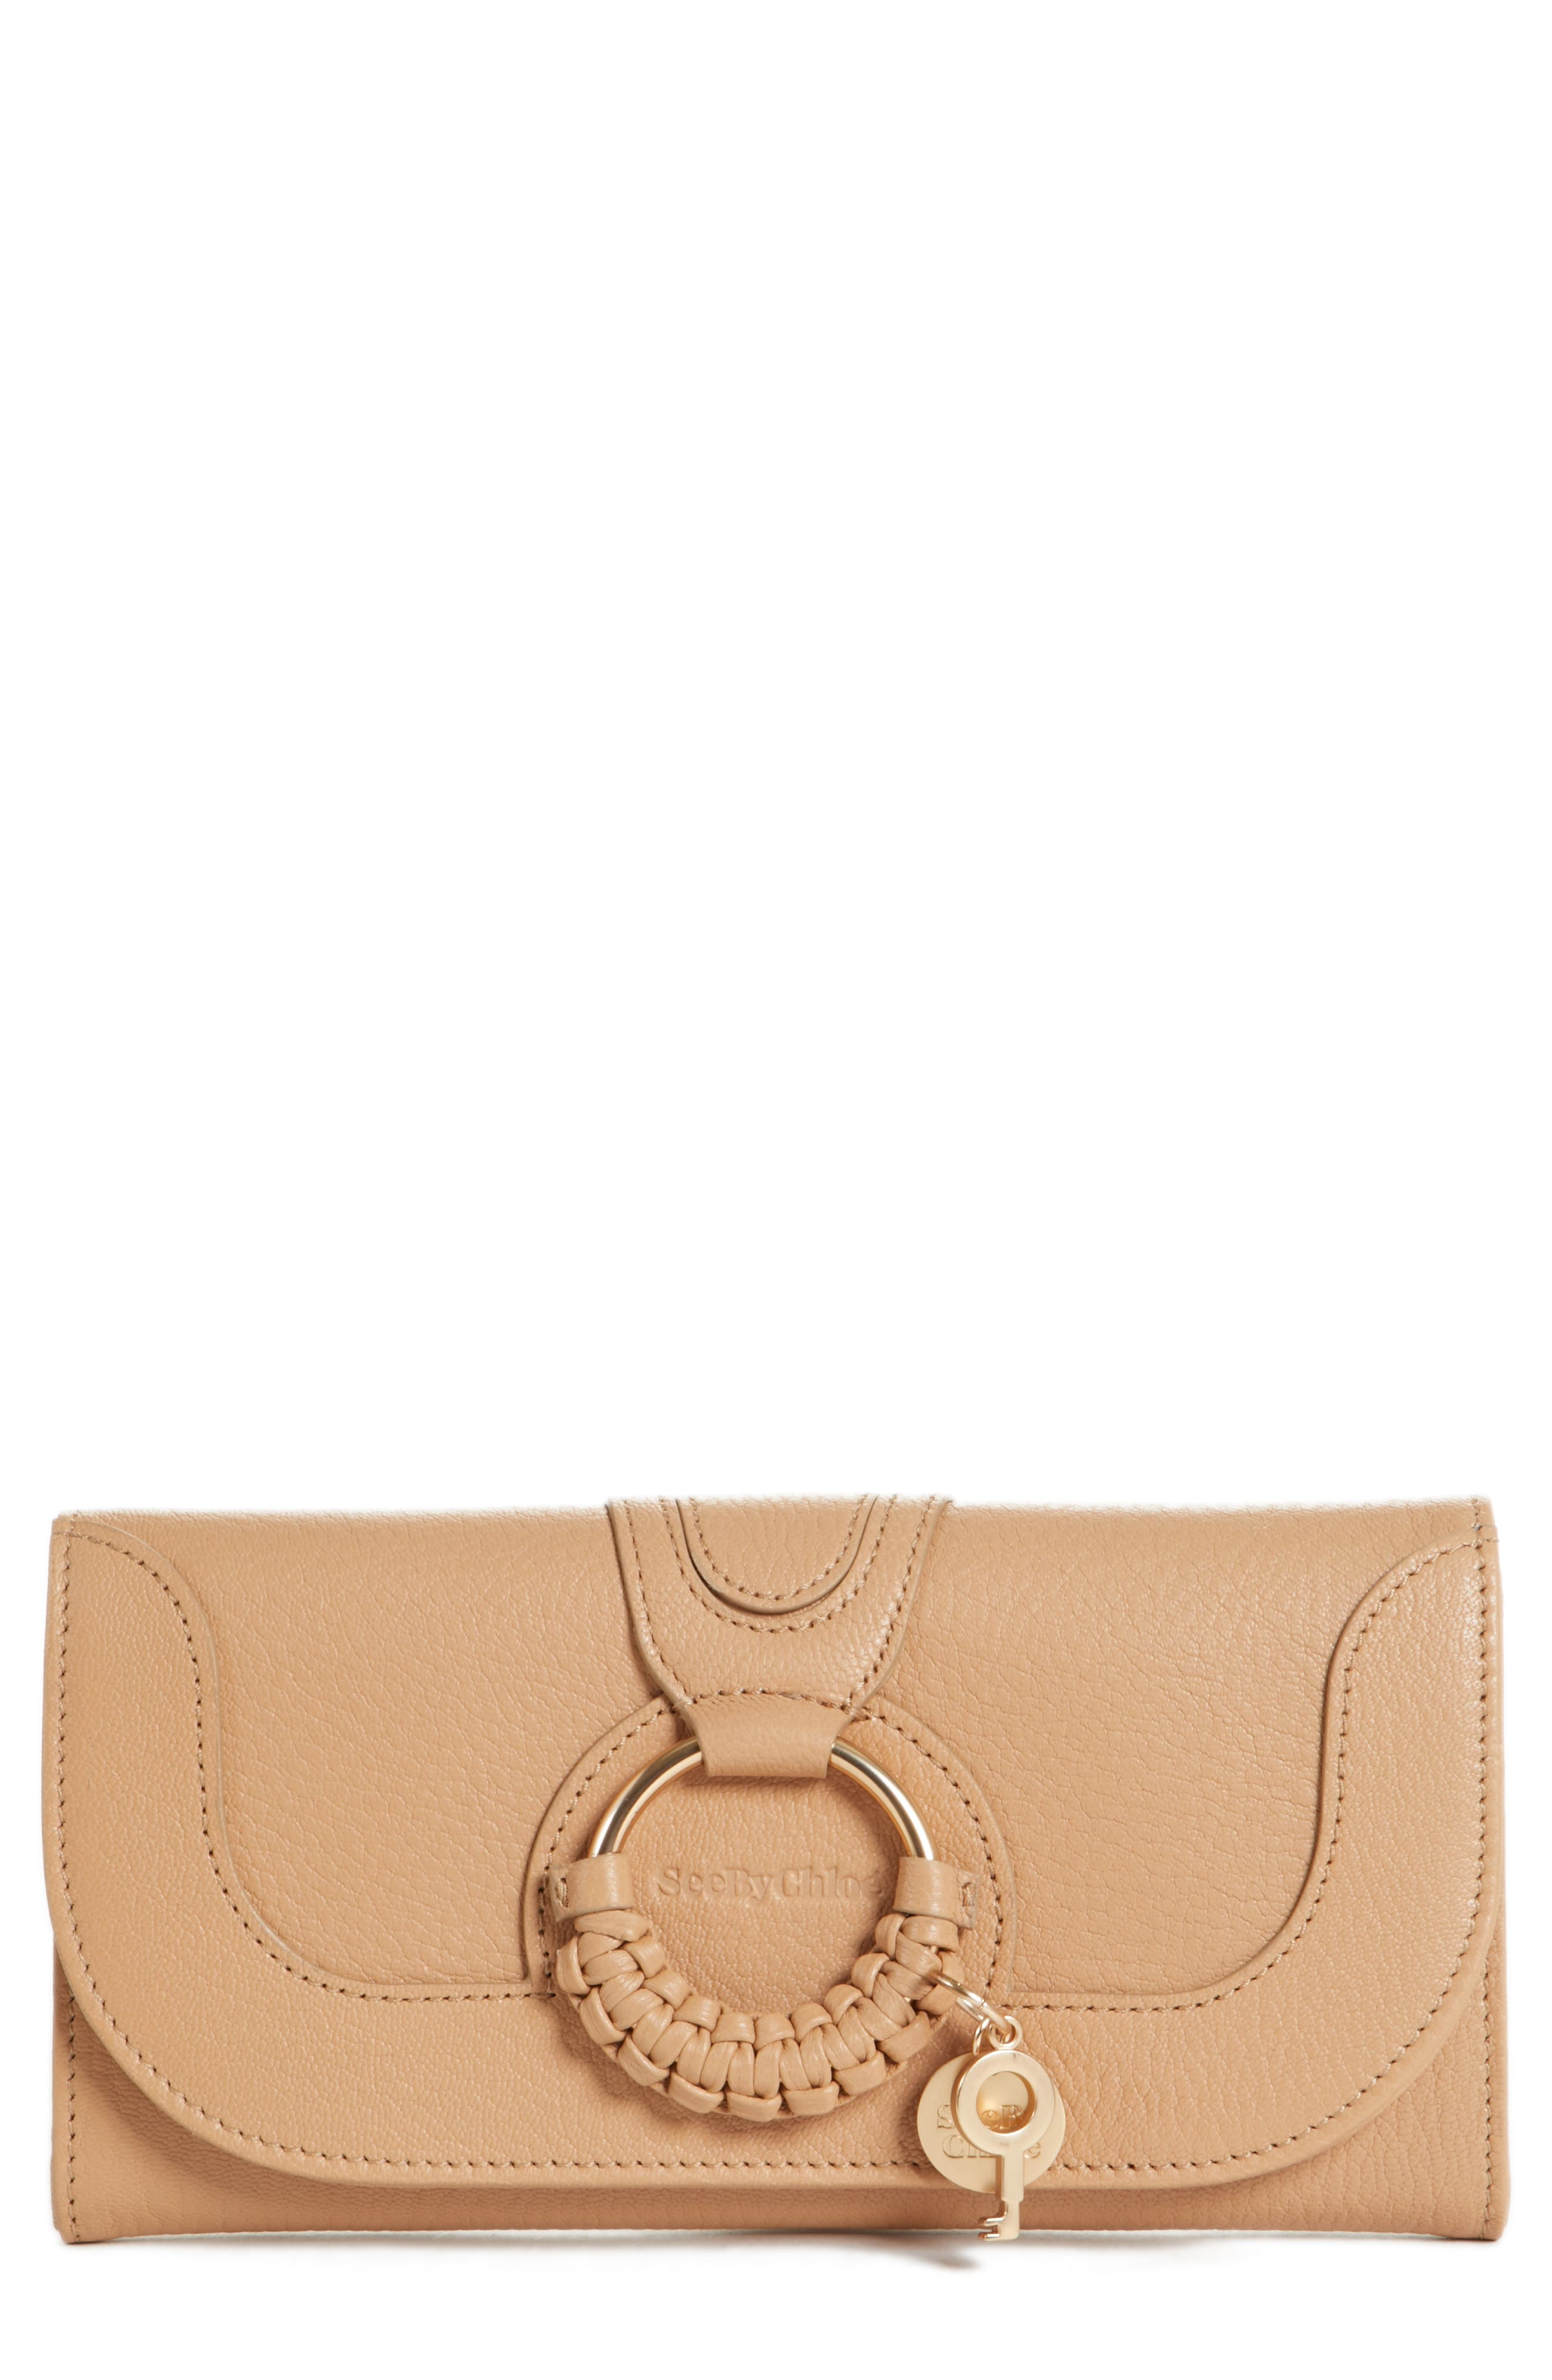 See by Chloé Hana Large Leather Wallet